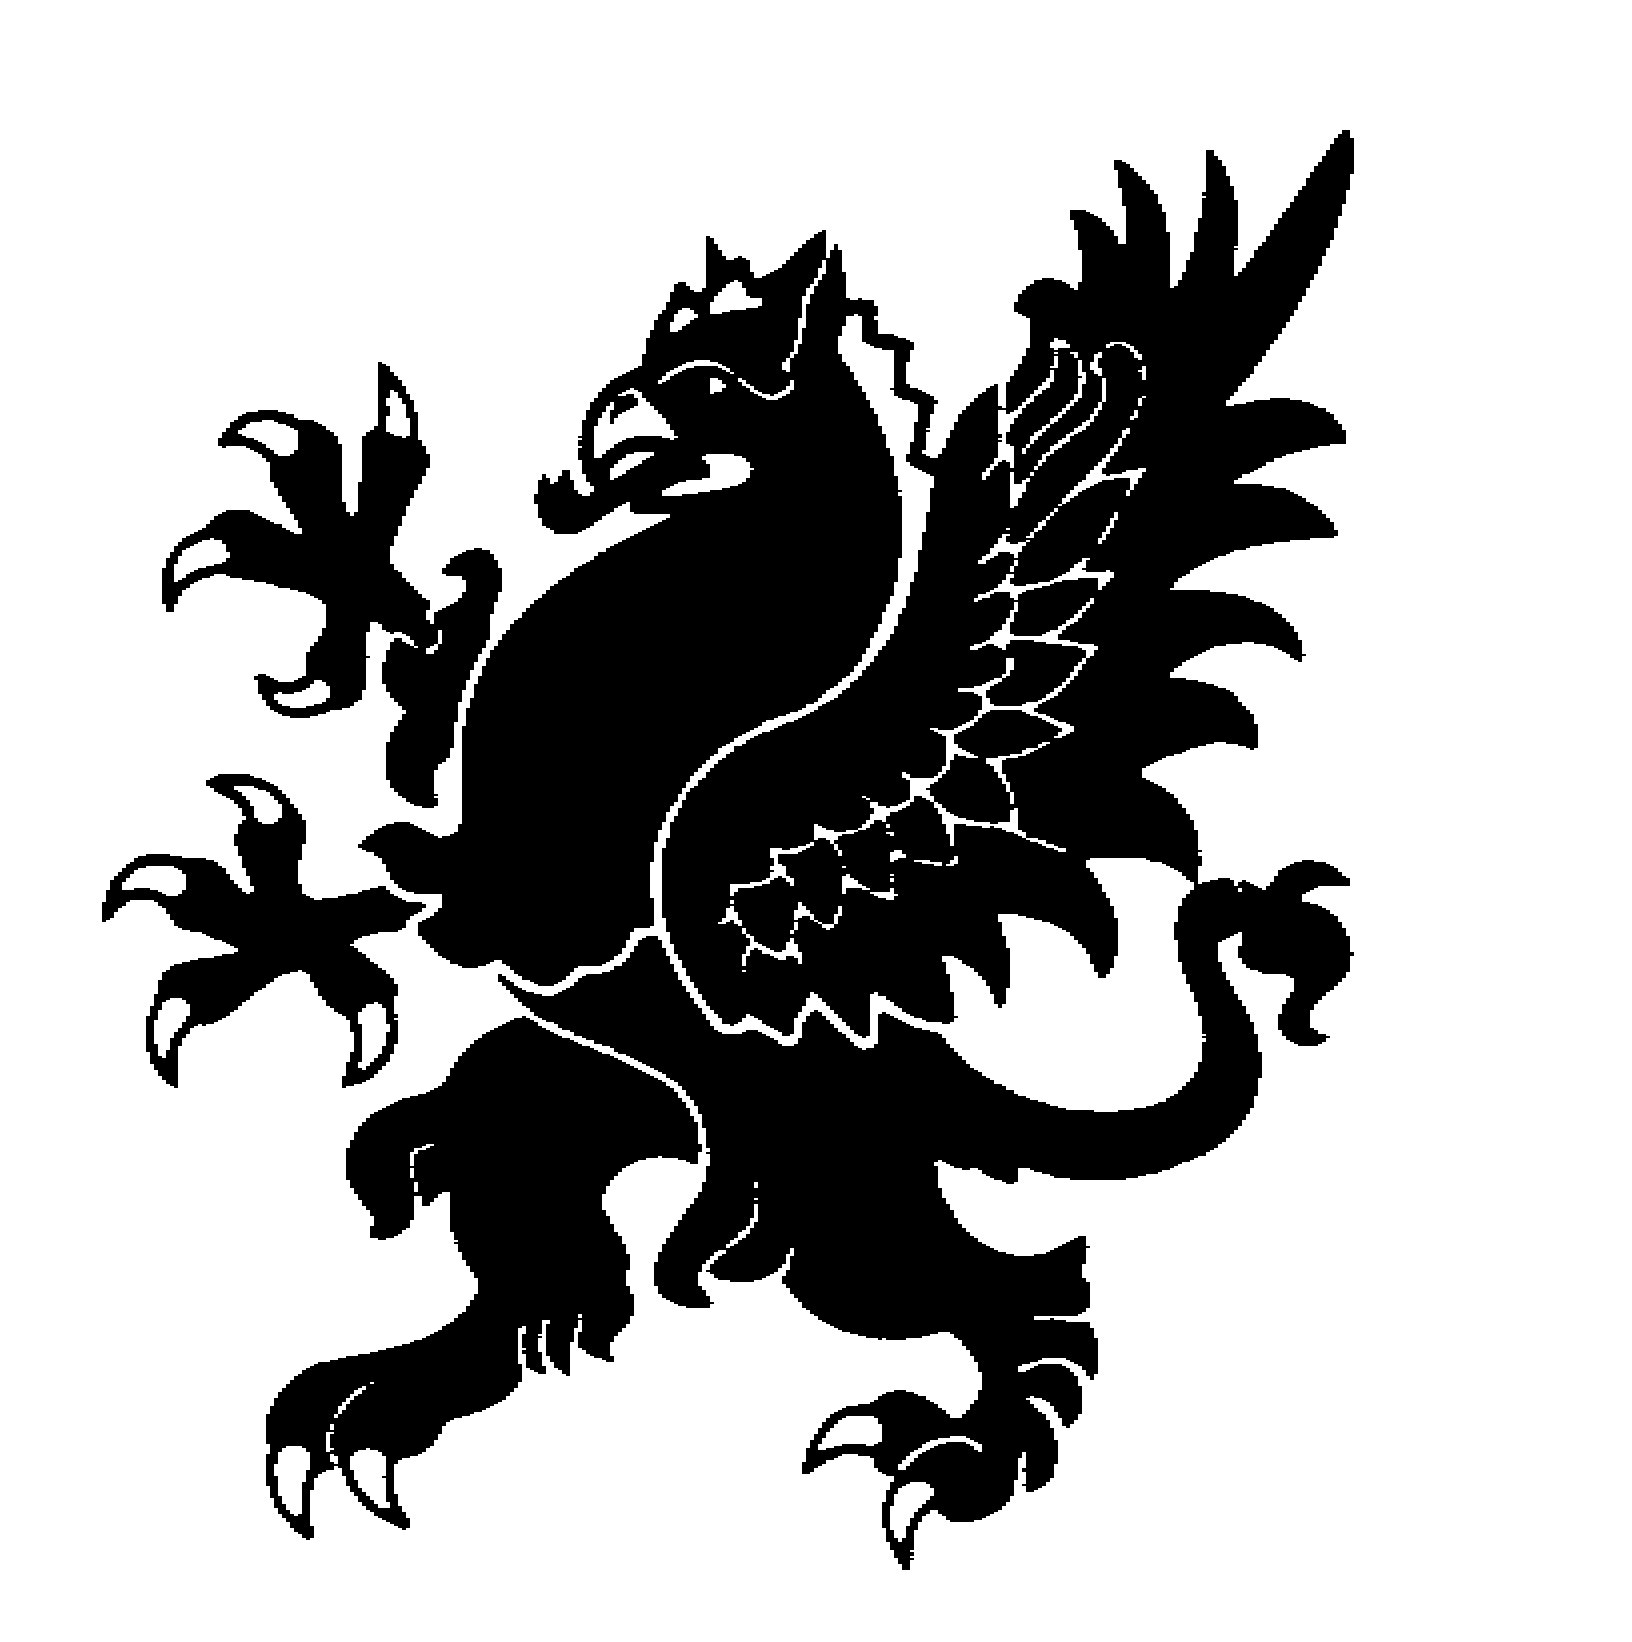 Lion Head Griffin http://jpreshaw.edublogs.org/school-emblem/